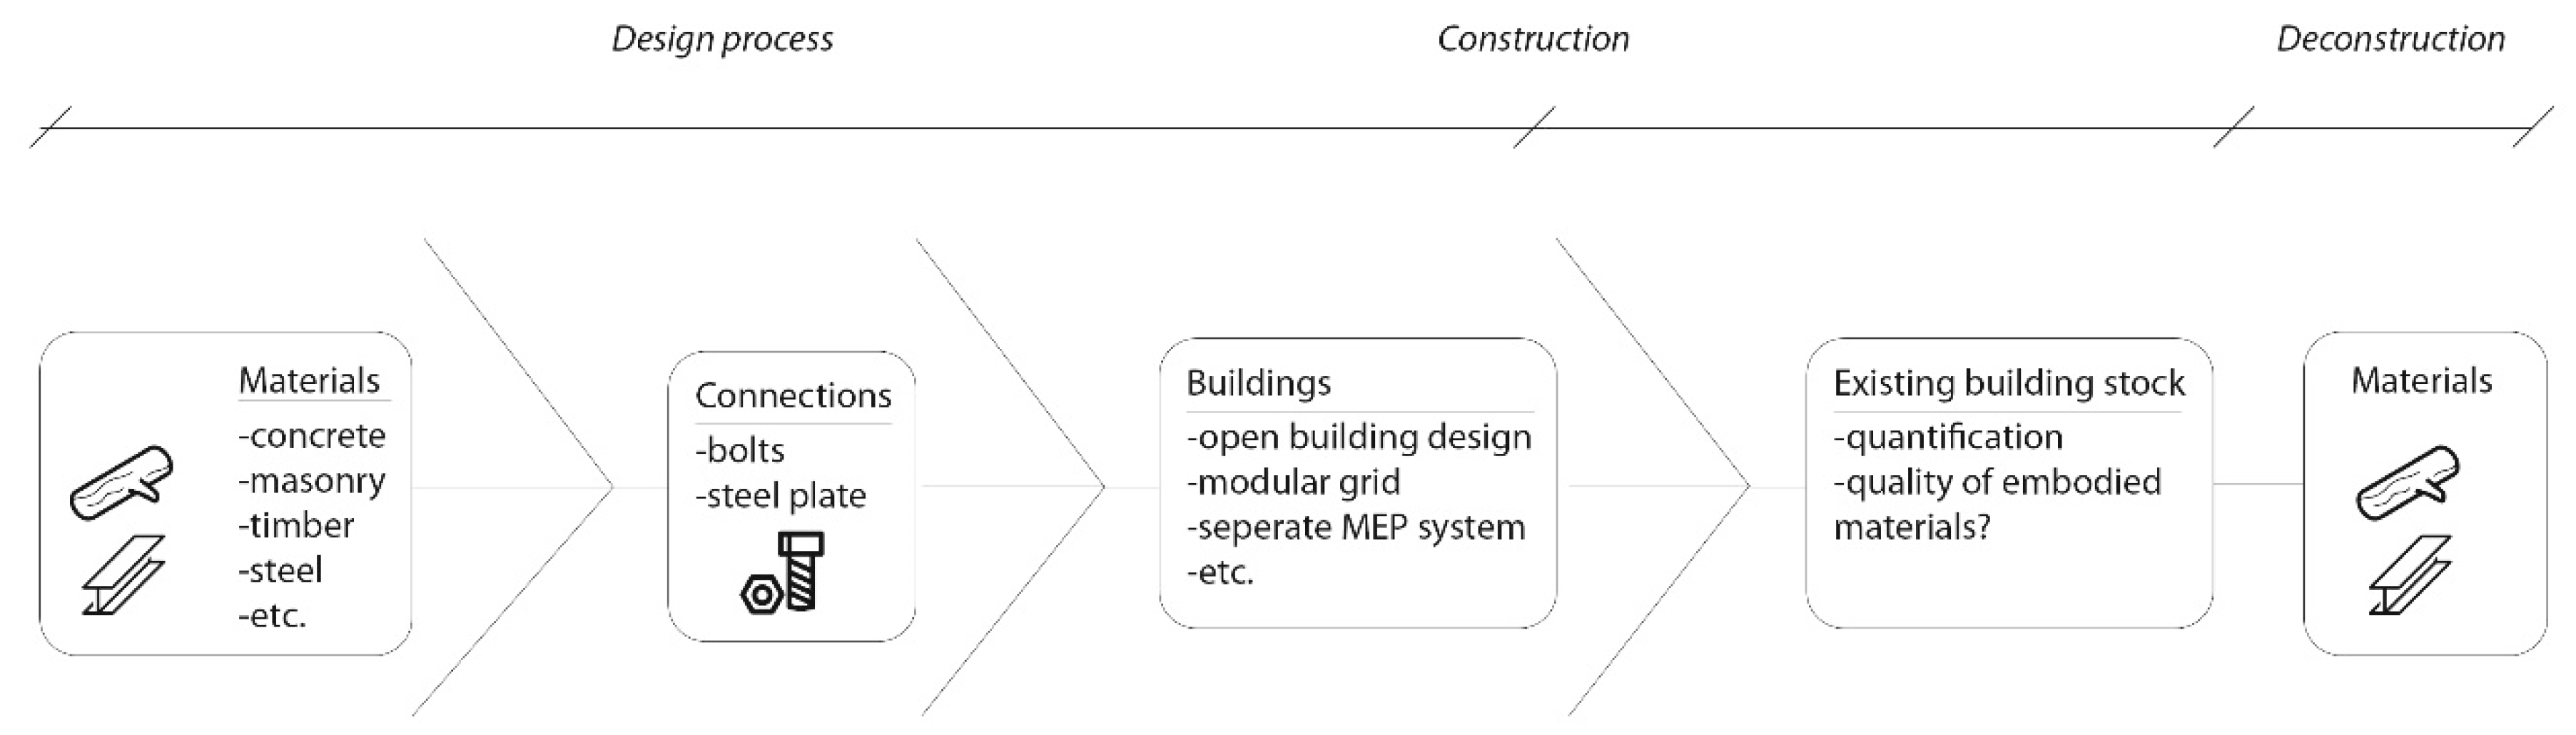 Buildings | Free Full-Text | Design for Deconstruction in the ...